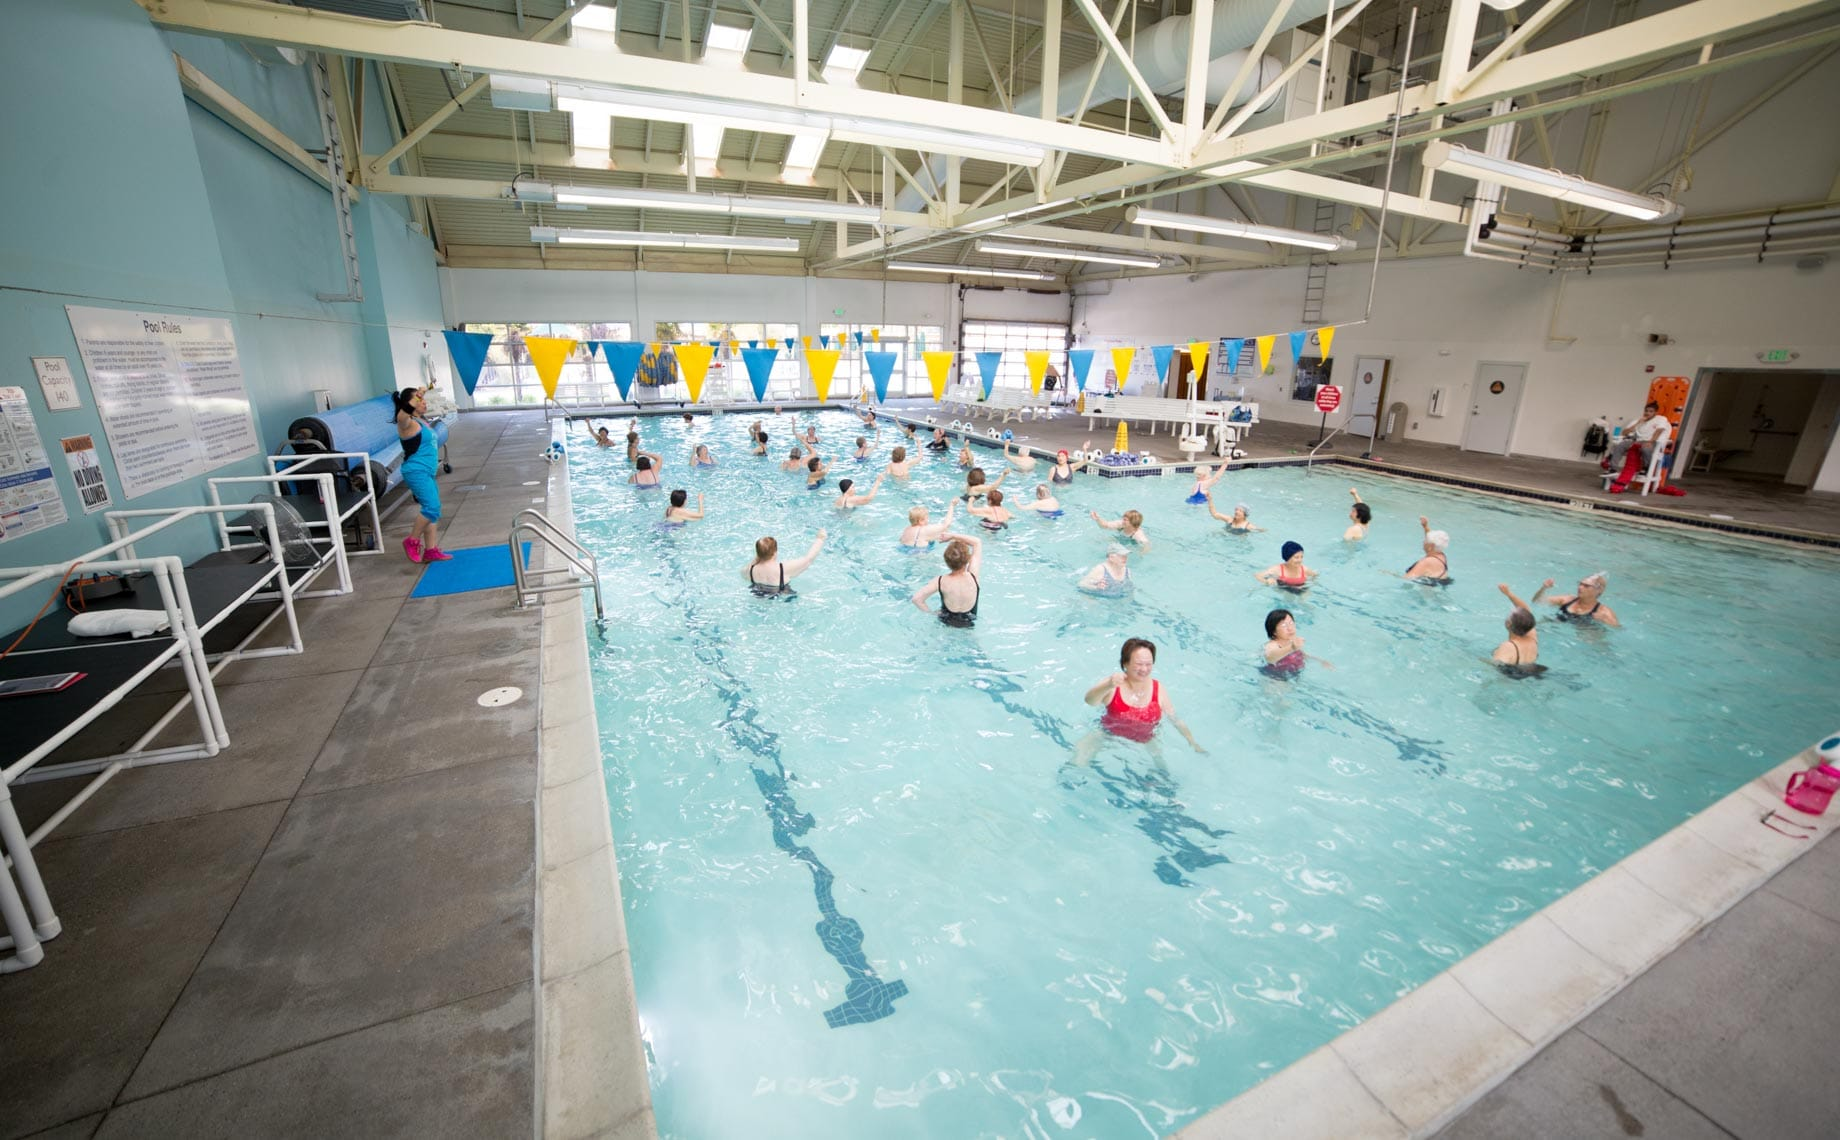 Women in a pool exercise class indoors